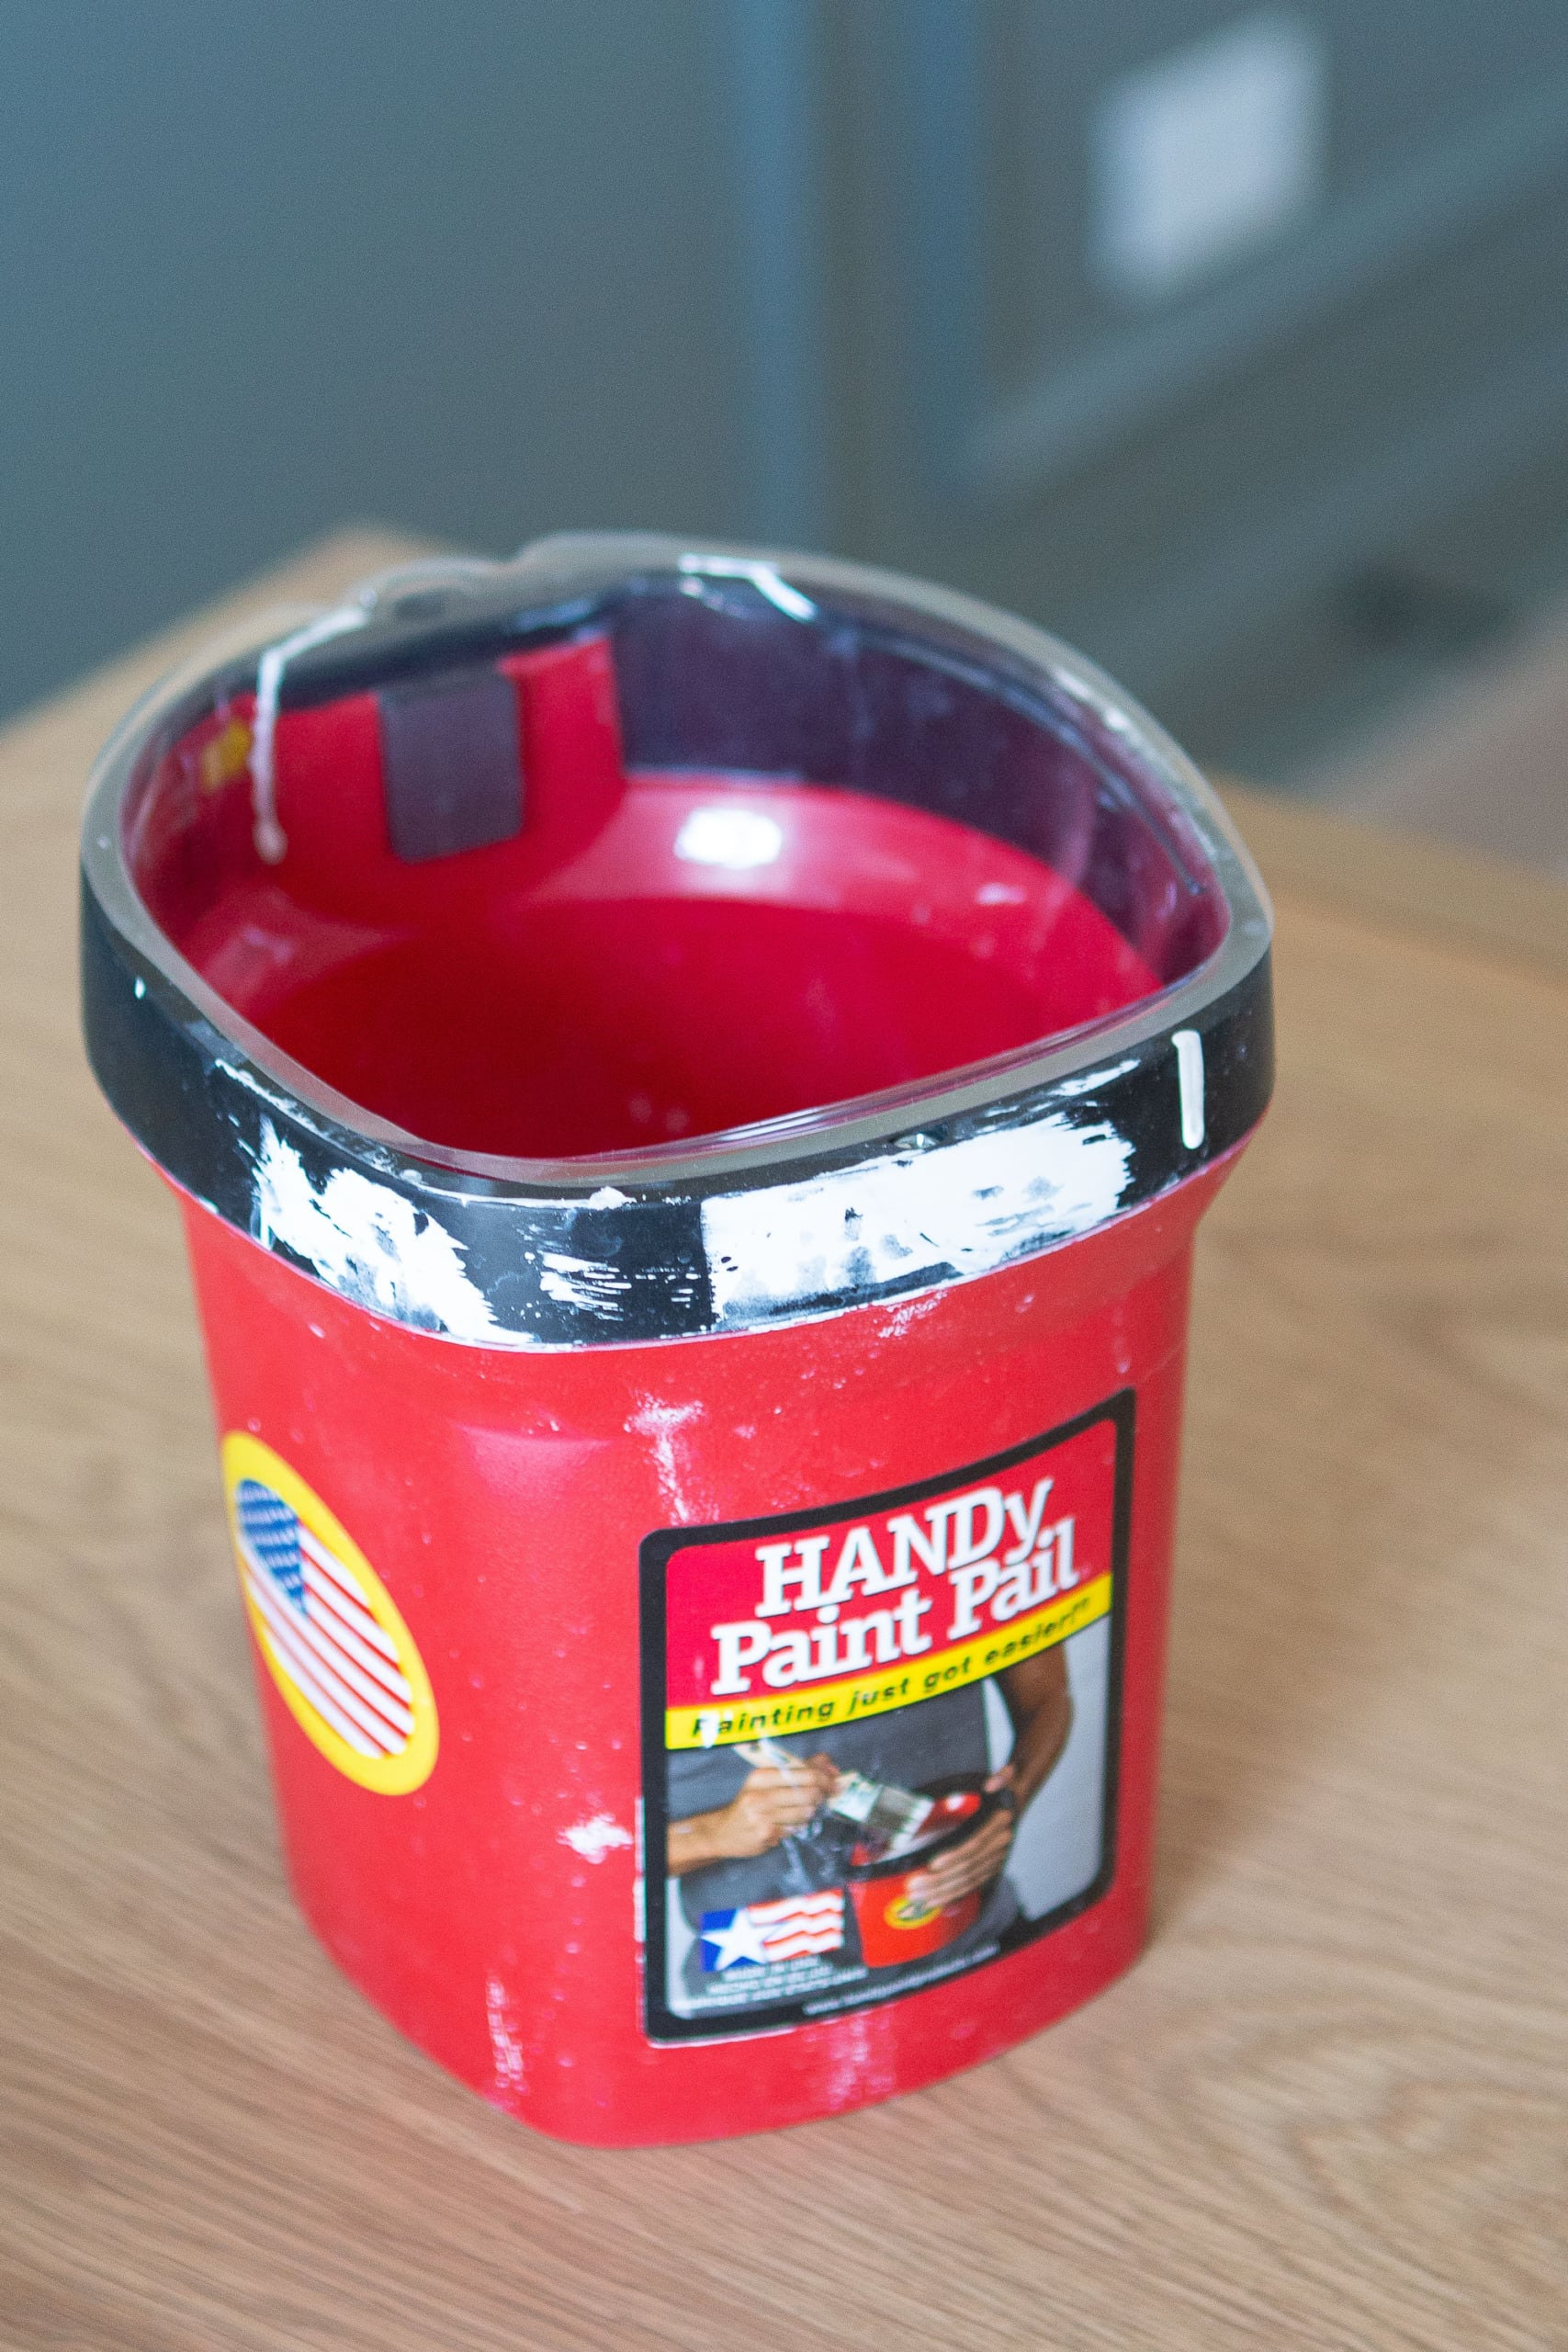 handy paint pail for painting